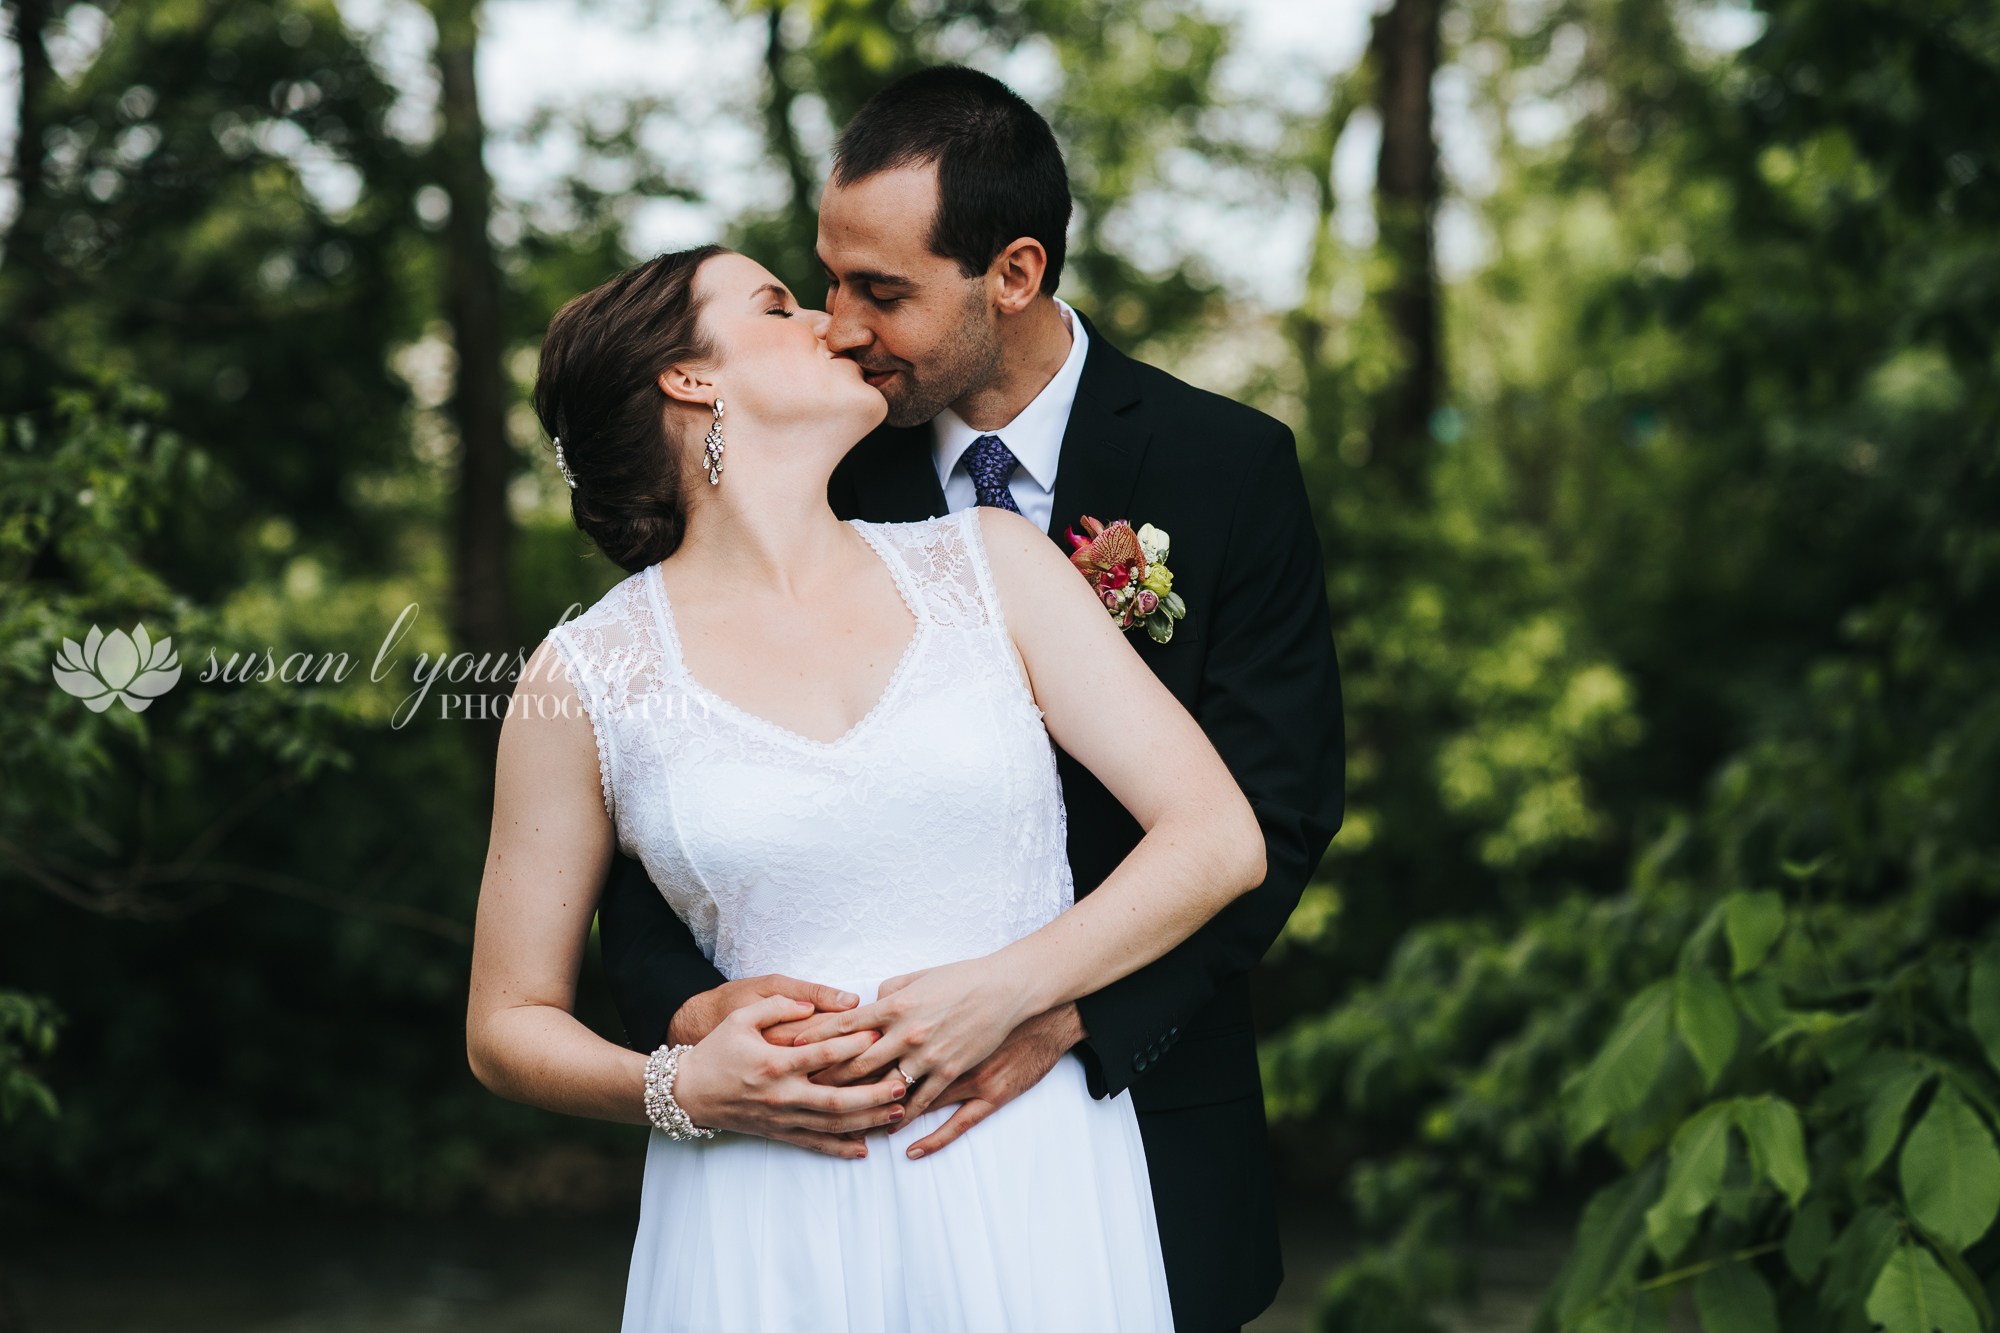 Adena and  Erik Wedding 05-17-2019 SLY Photography-27.jpg